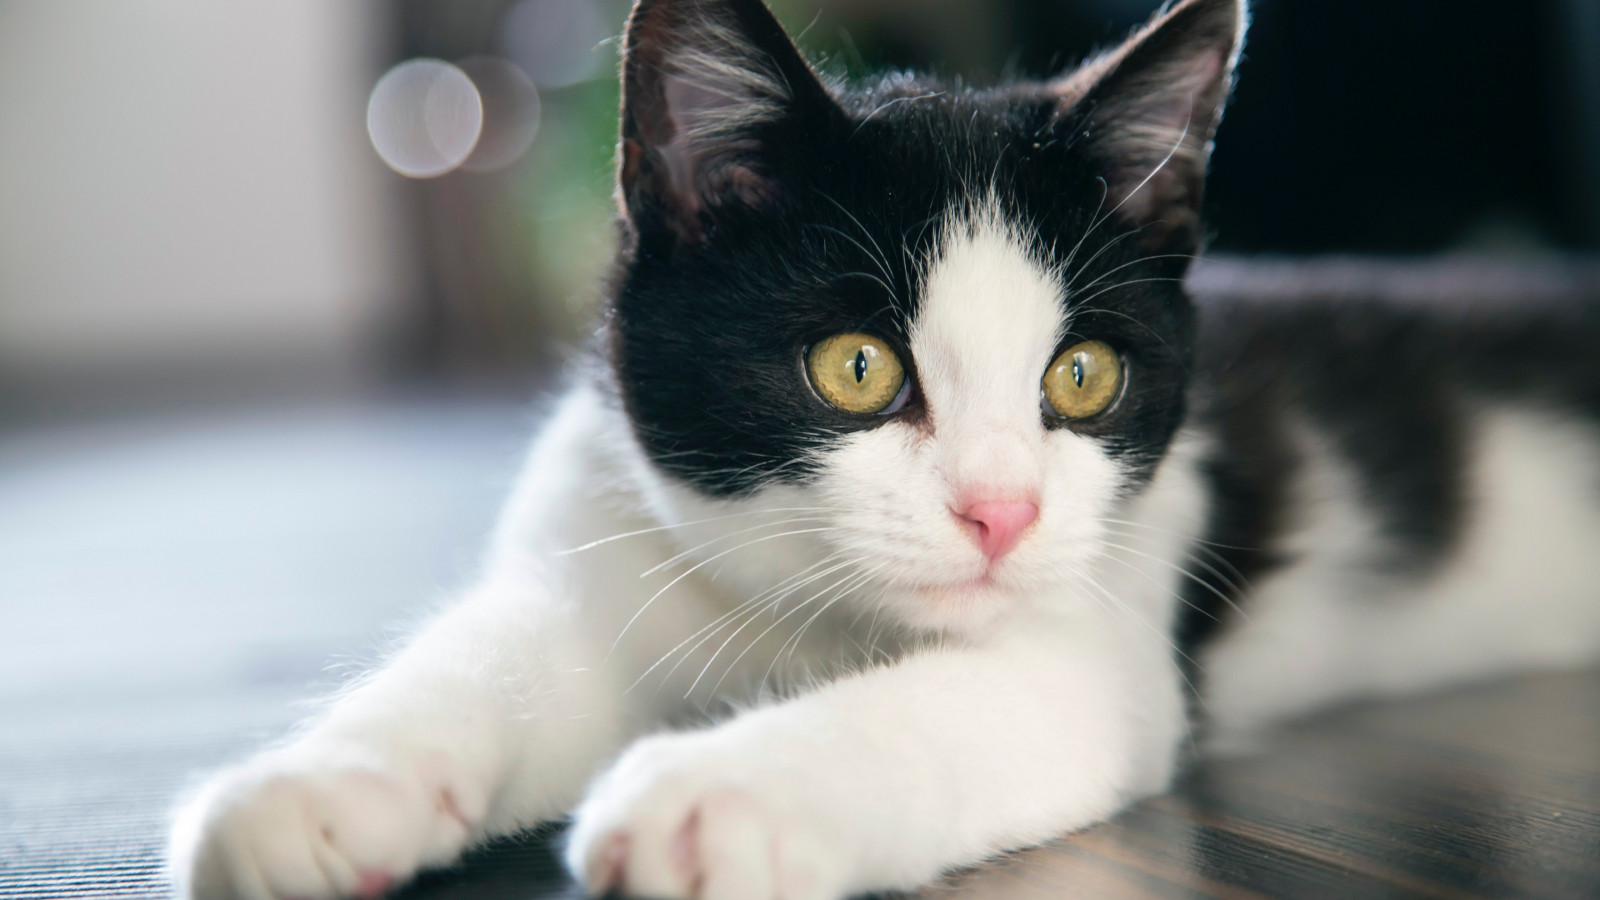 Black and white cat wallpaper 1600x900